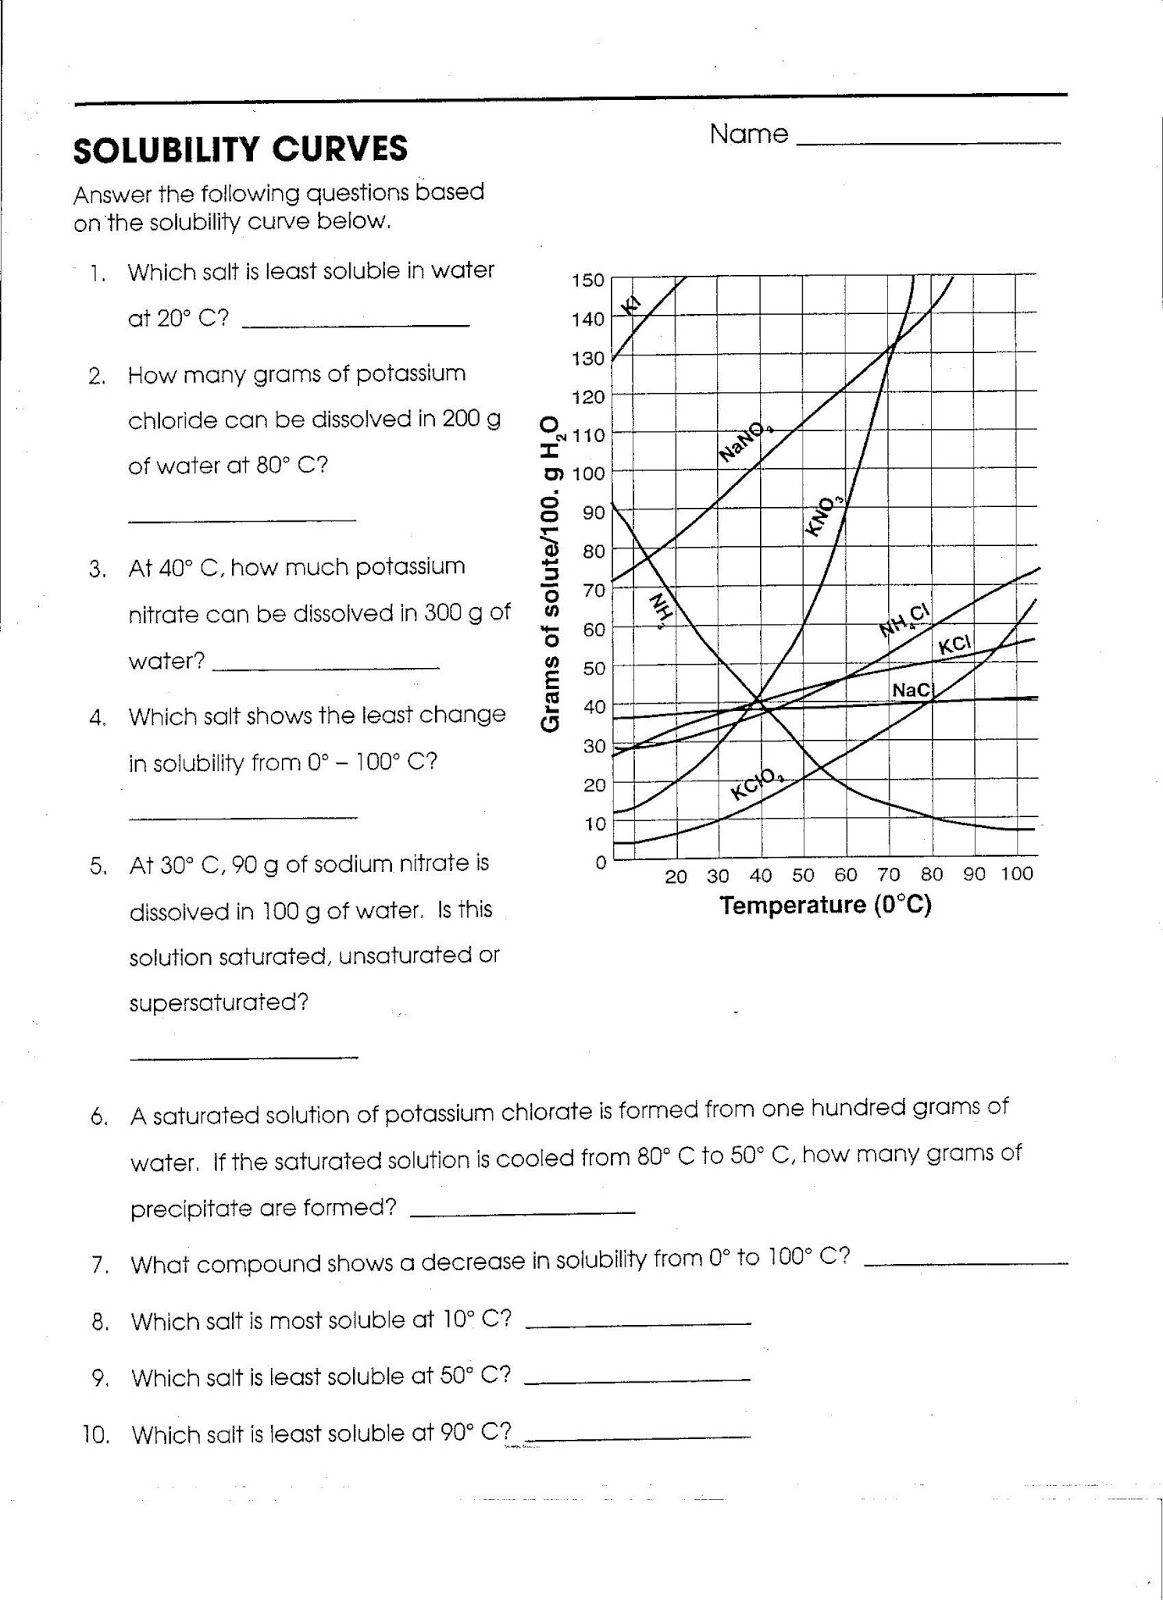 solubility curve worksheet - [PDF]Solubility curve worksheet Easy Peasy All in One High School